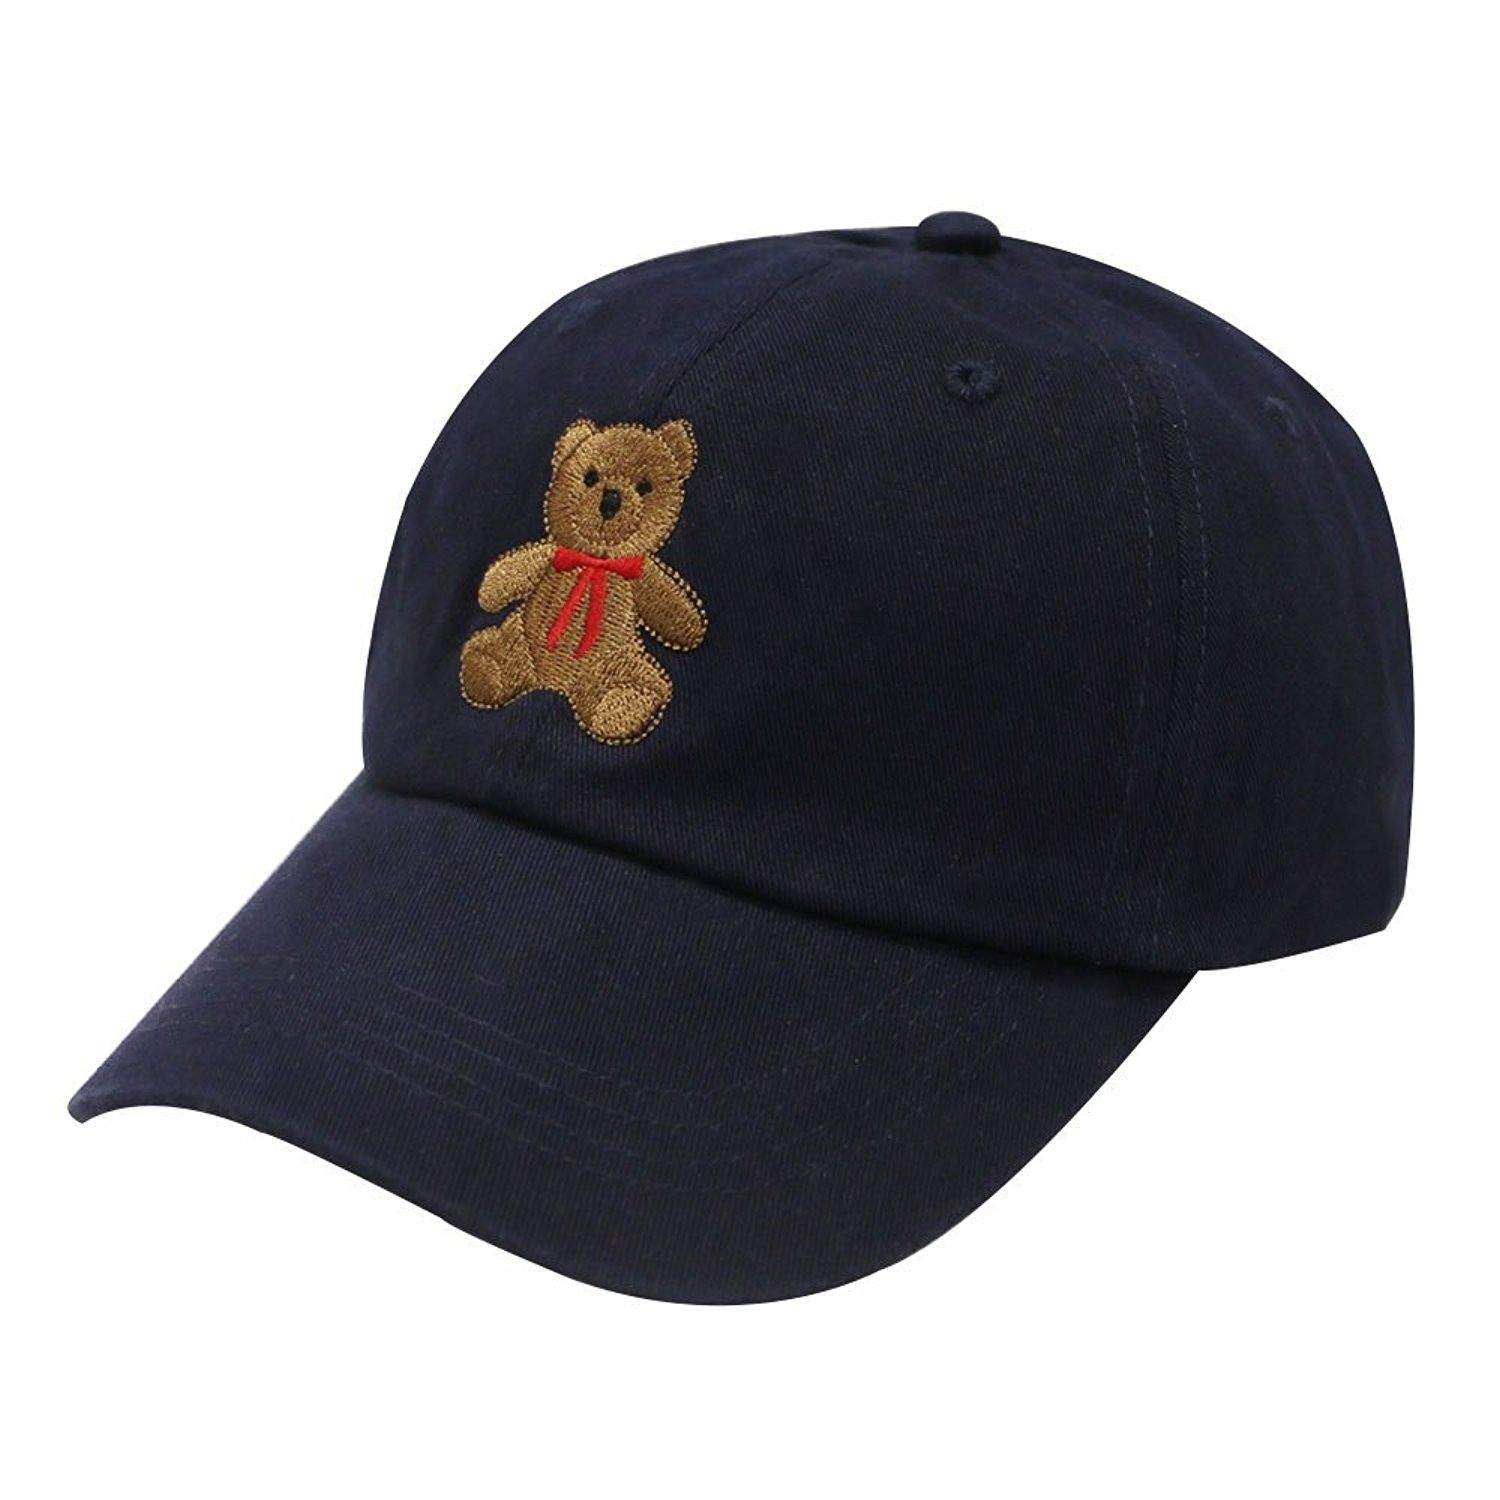 C104 Teddy Bear Cotton Baseball Cap 14 Colors - Navy - C112LC6Z1XD - Hats    Caps b7c1a3f324d